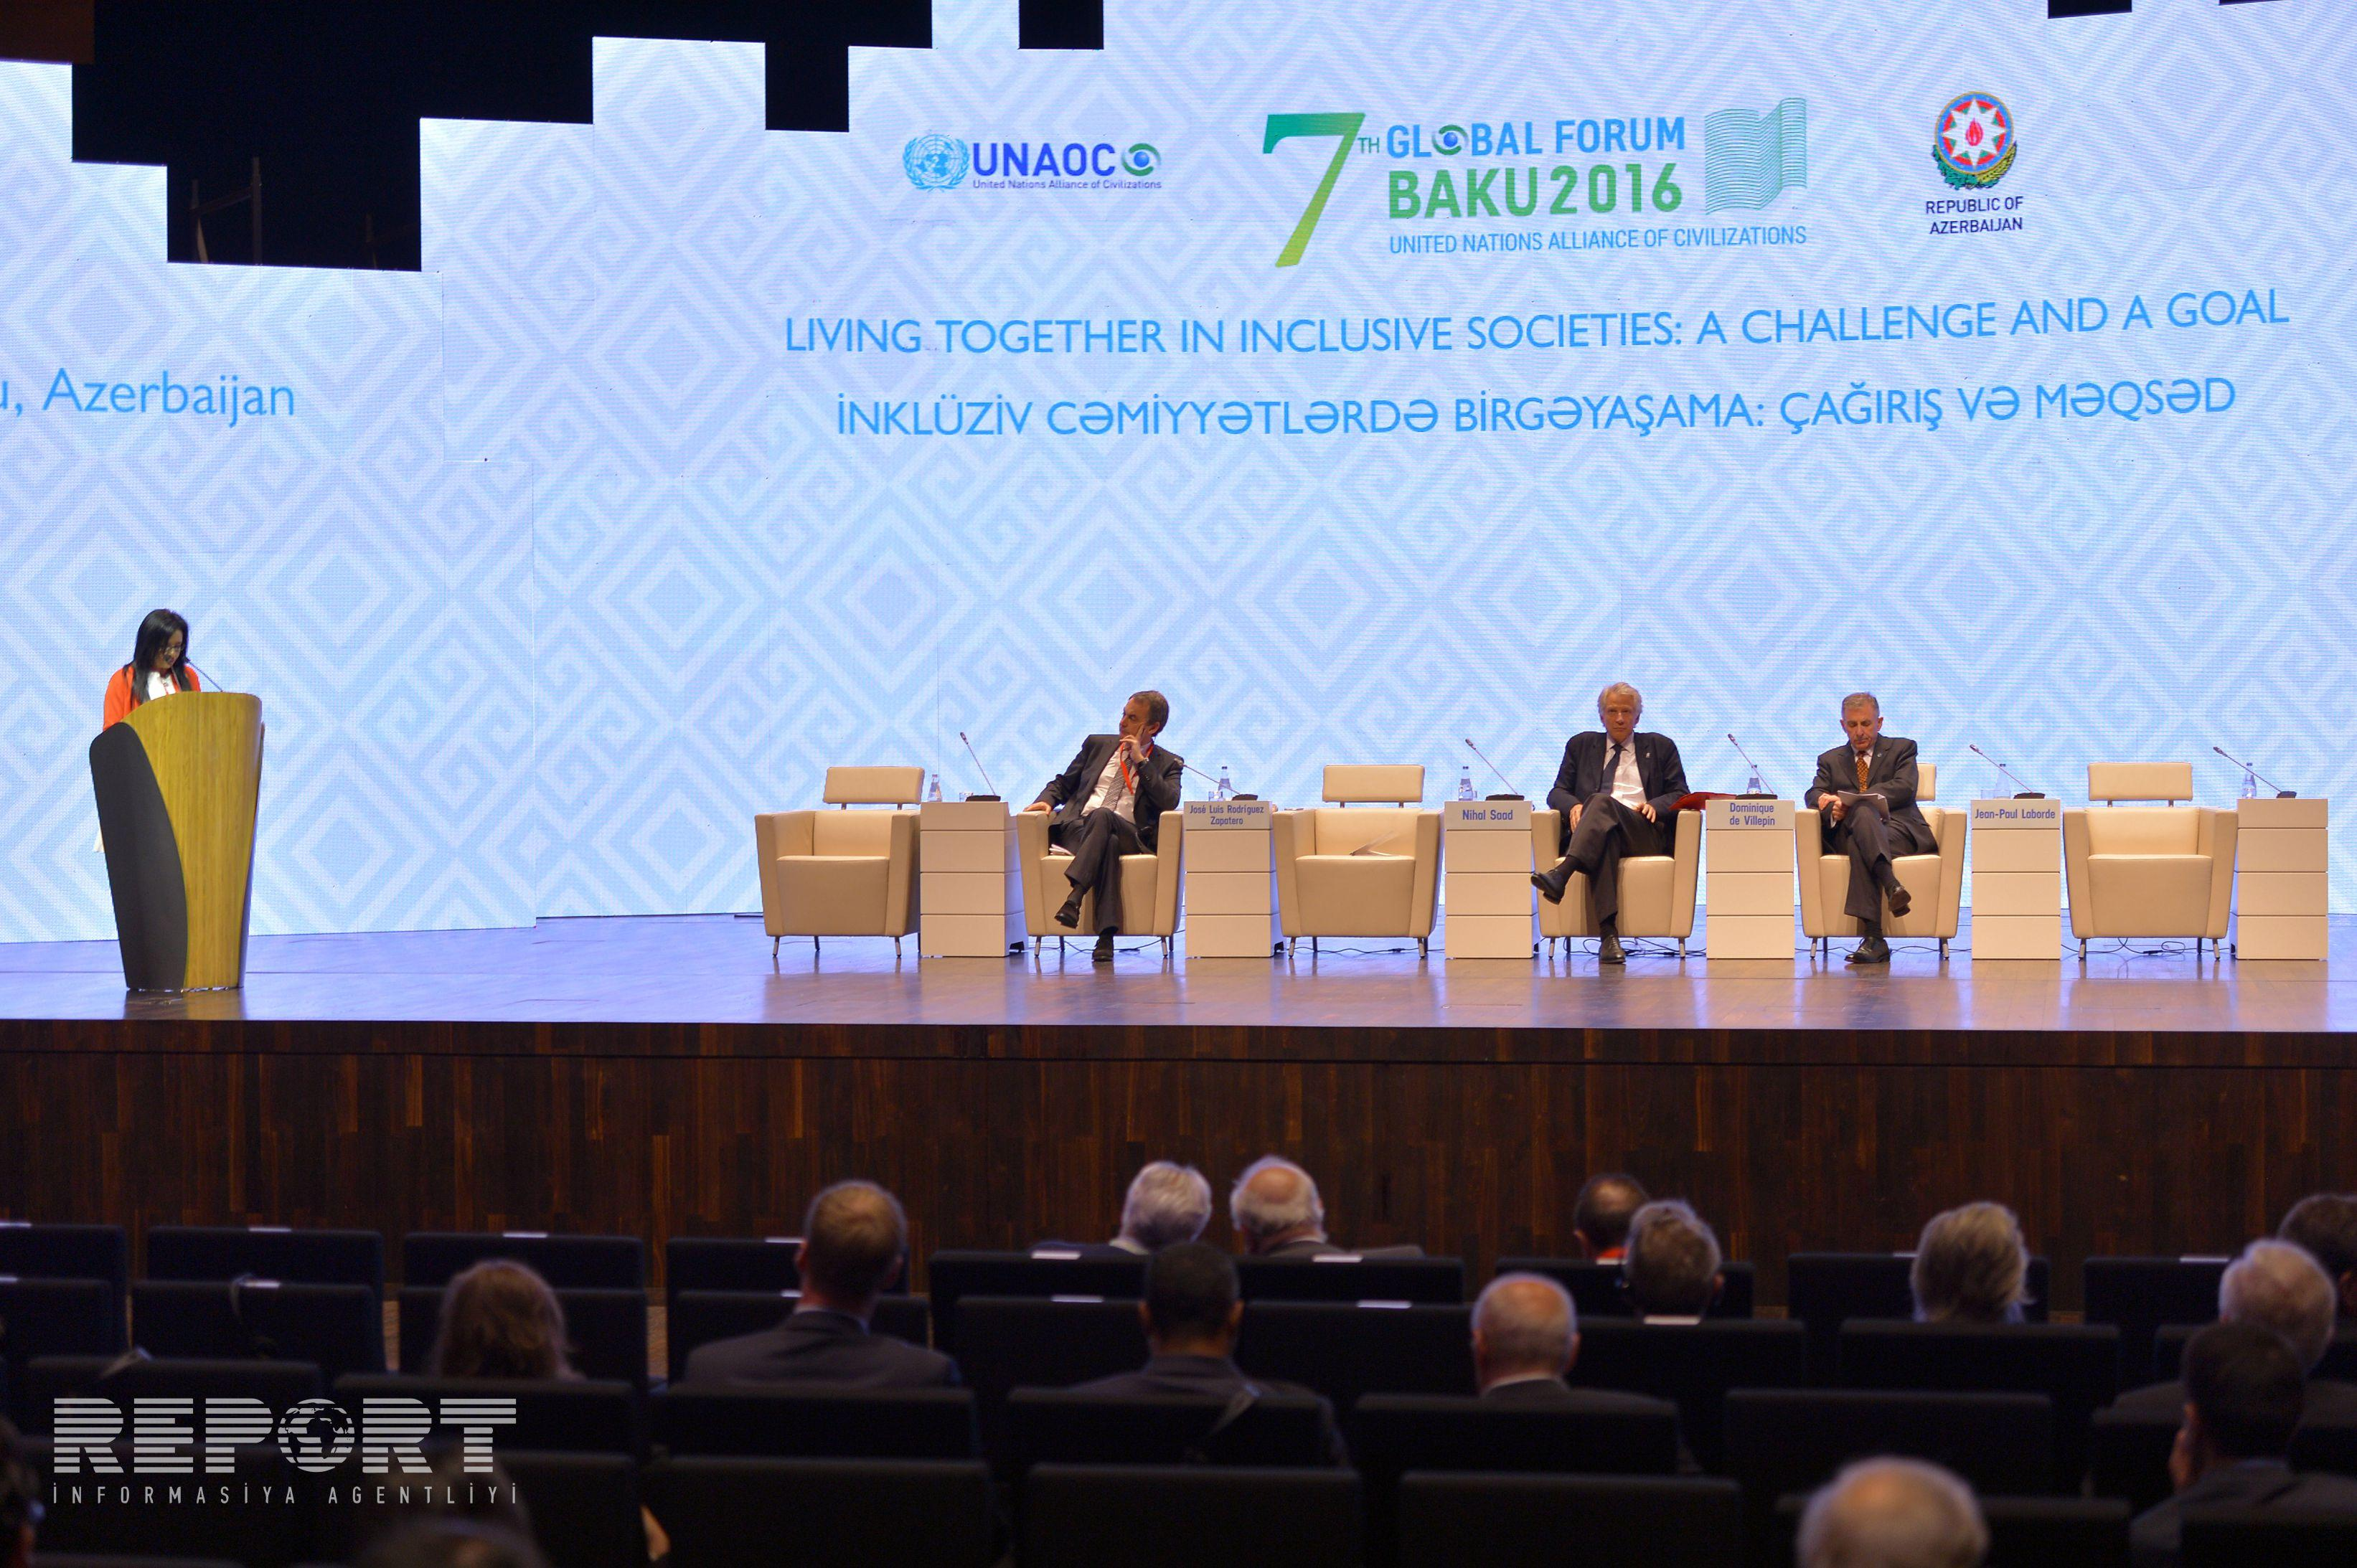 Dominique de Villepin: We lose battle against violent extremism in the Middle East and Europe